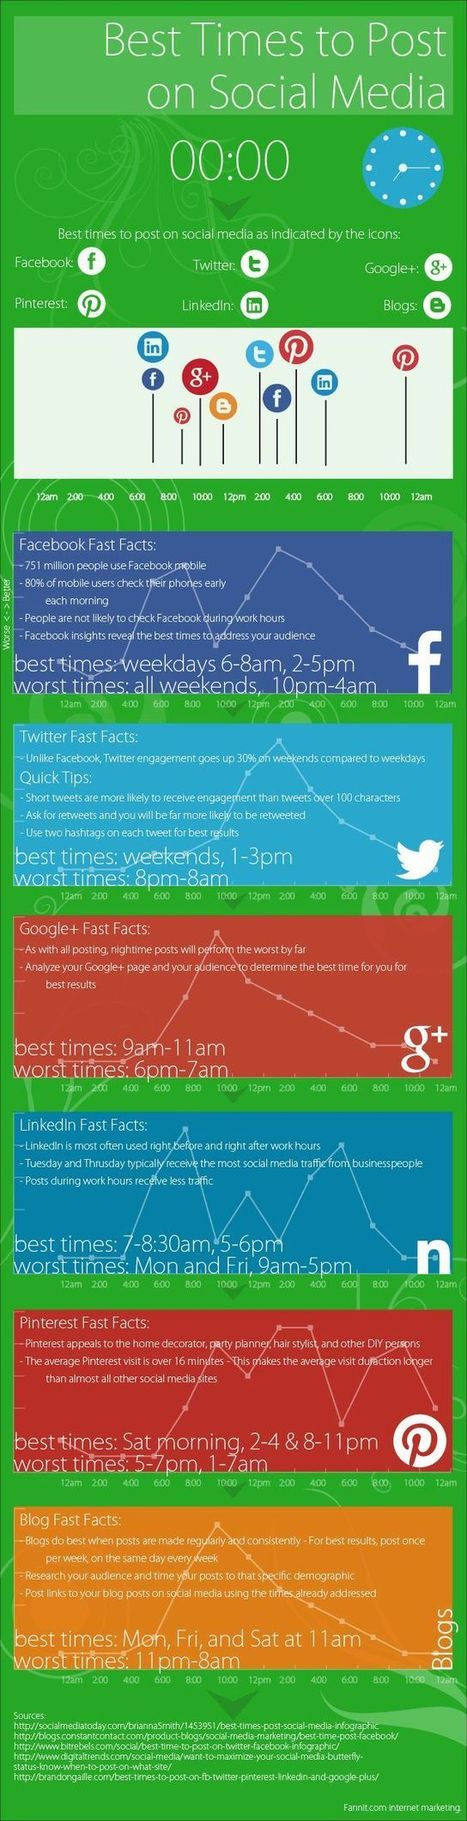 When to Post on Facebook, Twitter, Google+, LinkedIn, and Pinterest | Content marketing | Scoop.it